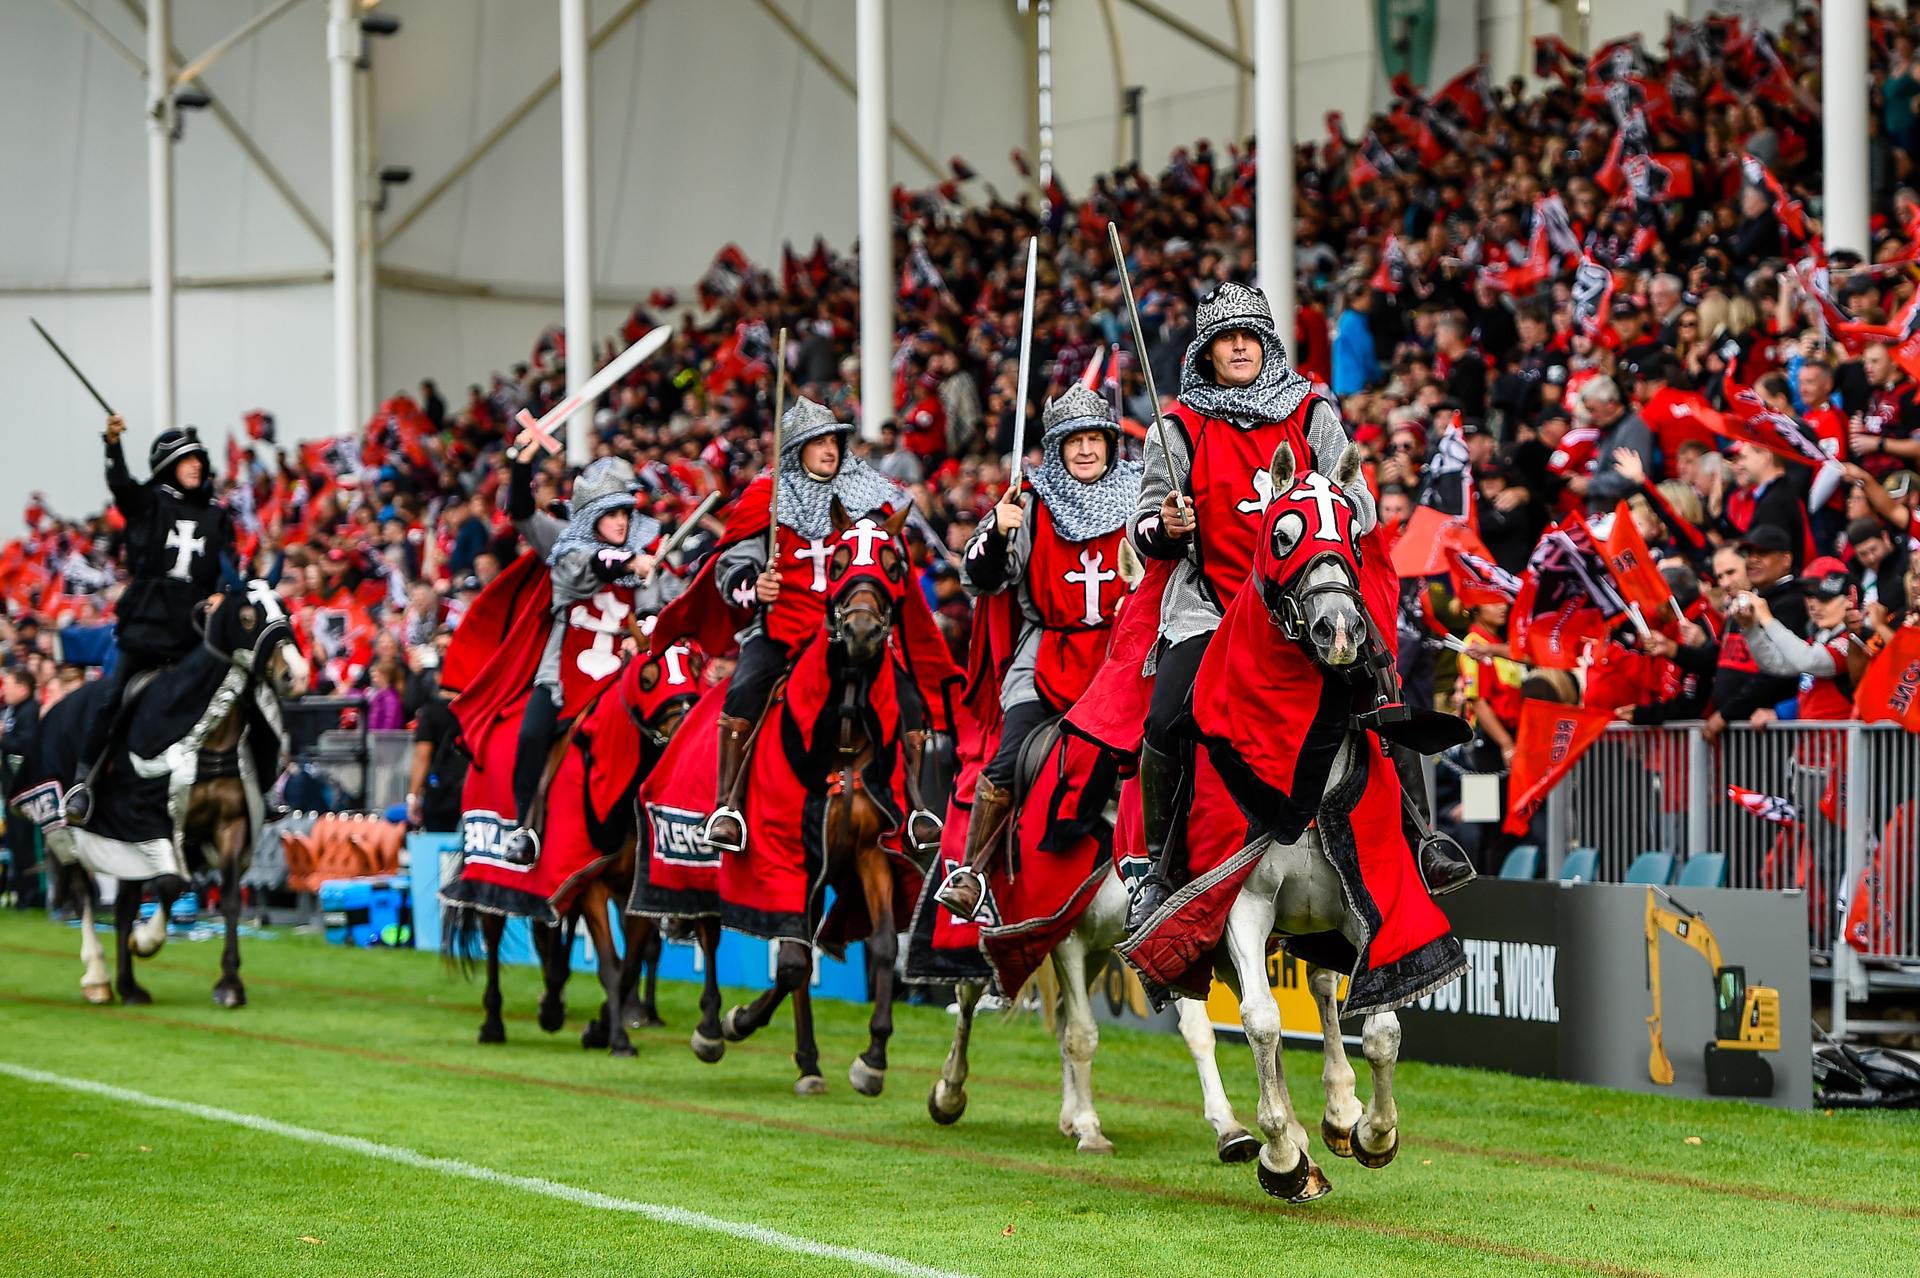 Super Rugby: Crusaders name change decision still some time away